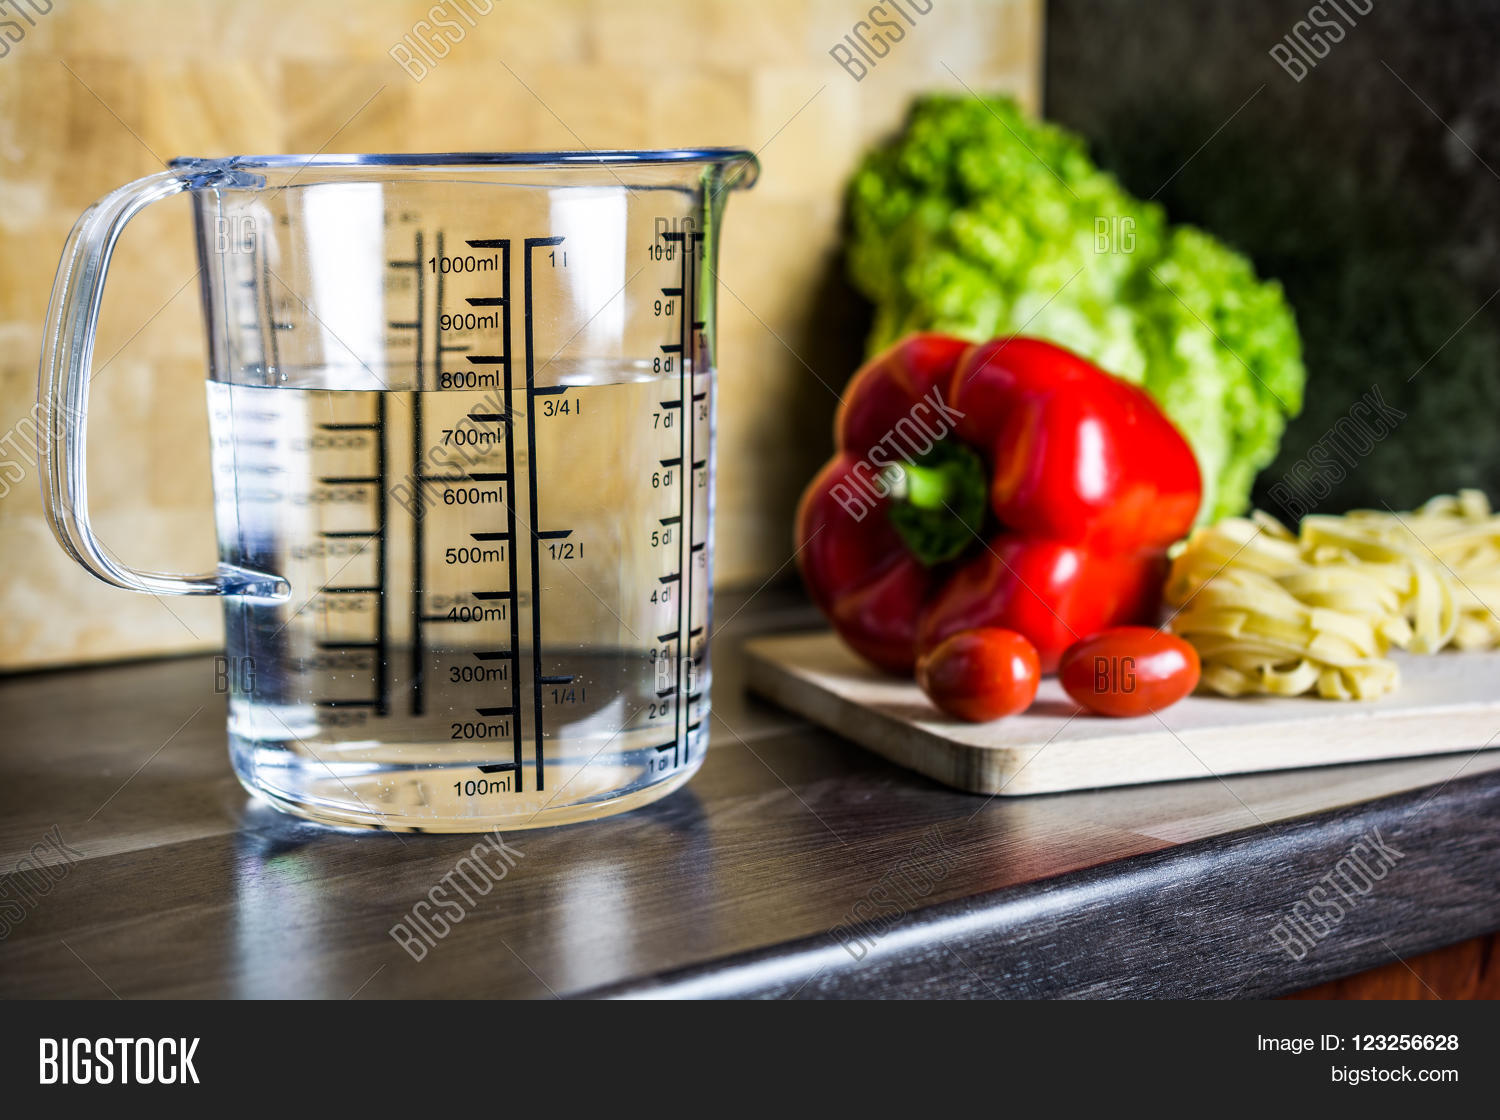 Kitchen Counter With Food 750Ccm  34 Liter  750Ml Water Image & Photo  Bigstock